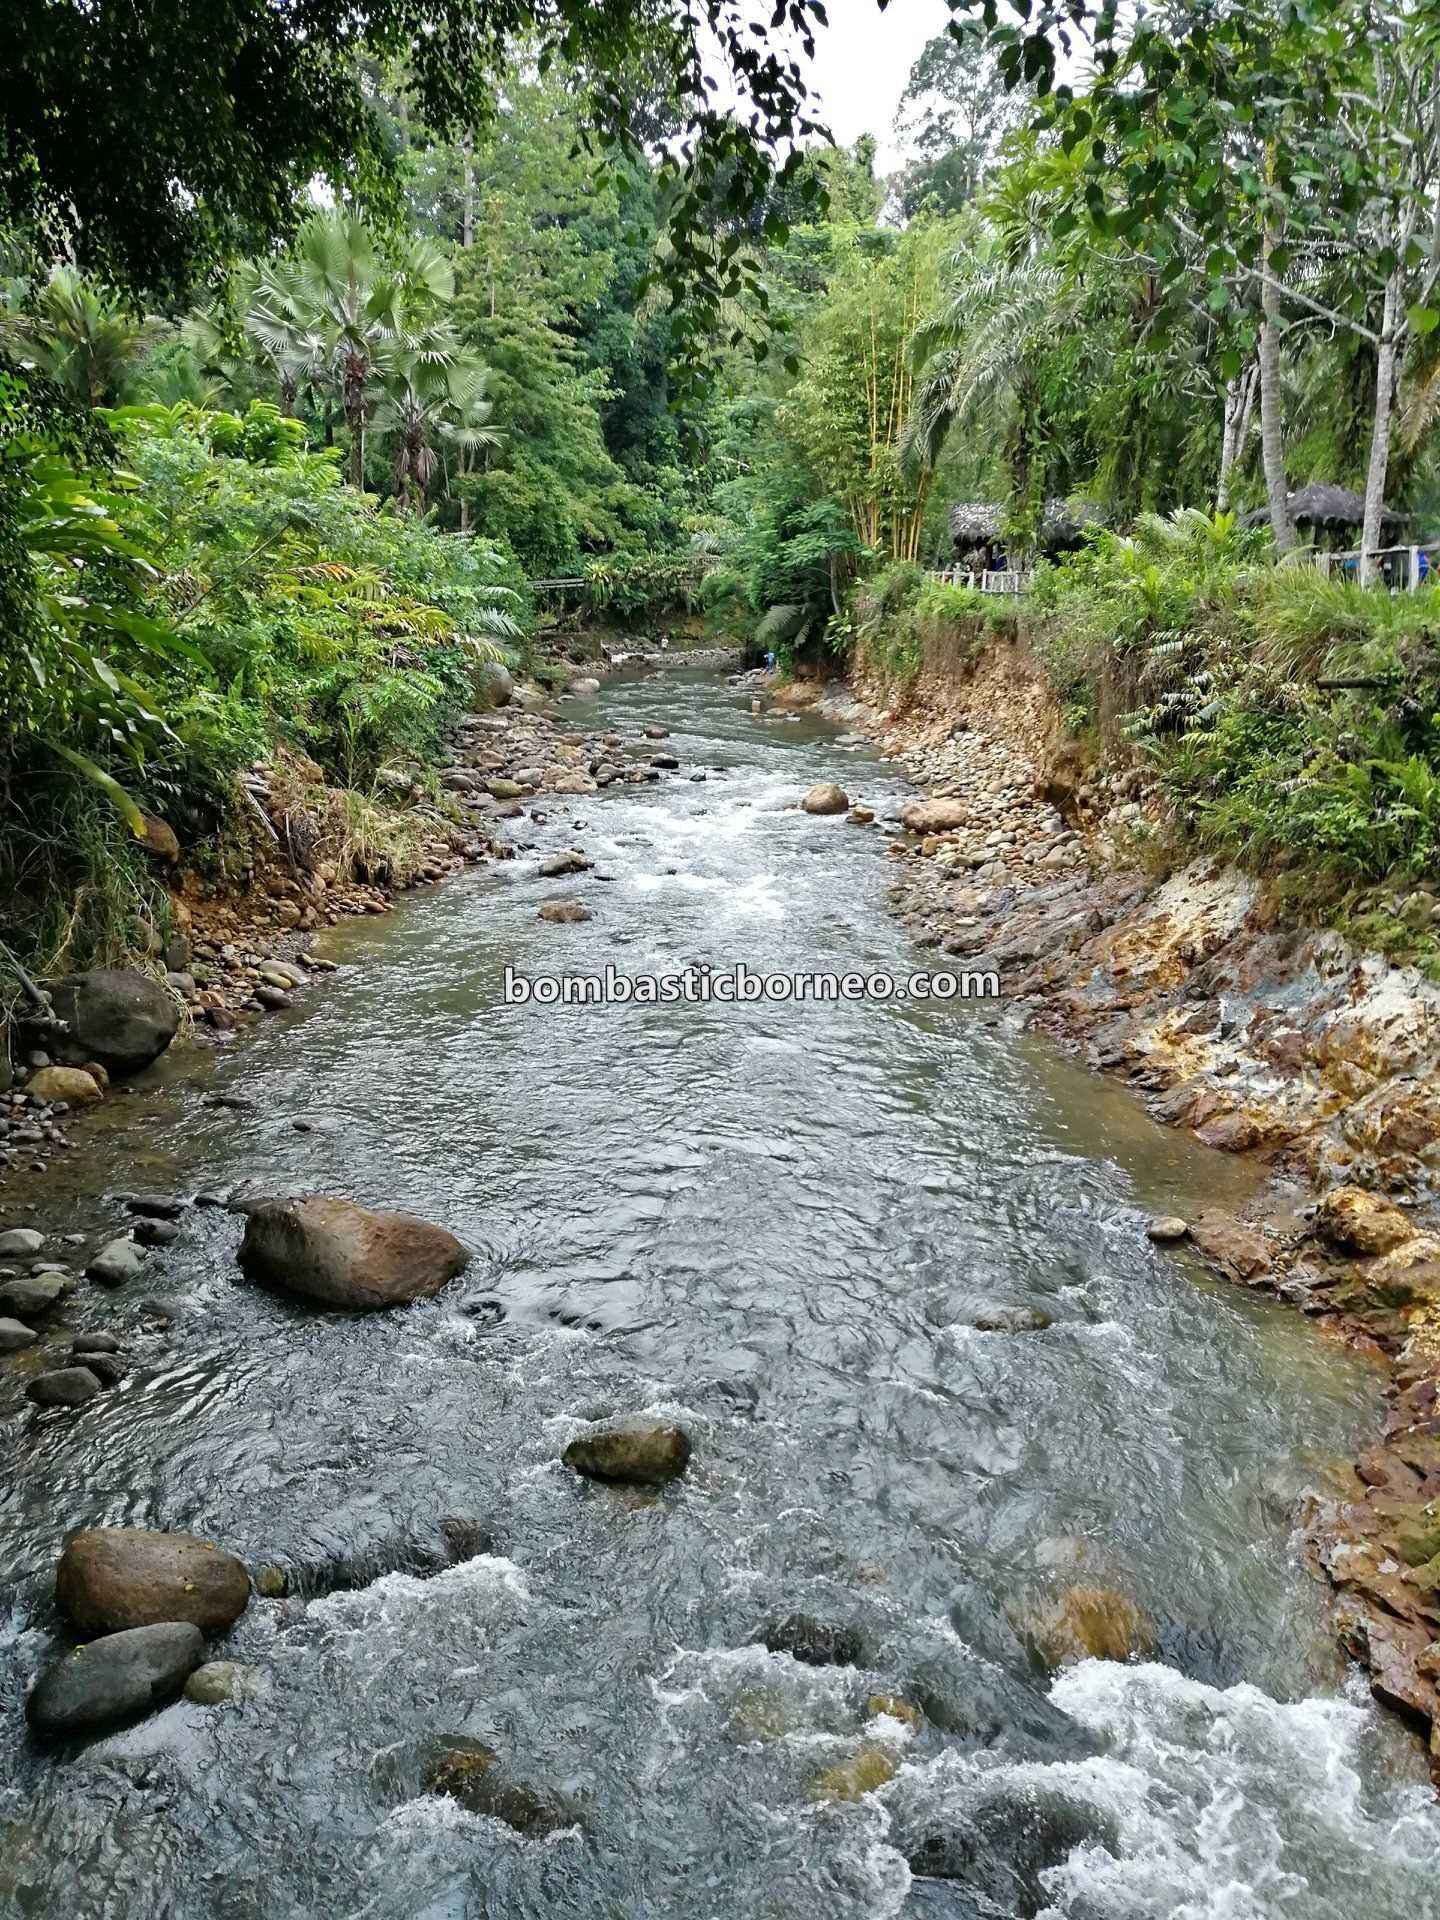 Resort, accommodation, chalets, adventure, nature, outdoor, backpacker, recreational park, family vacation, Malaysia, ecotourism, tourist attraction, 跨境婆罗洲游踪, 斗湖生态度假村, 沙巴旅游景点,